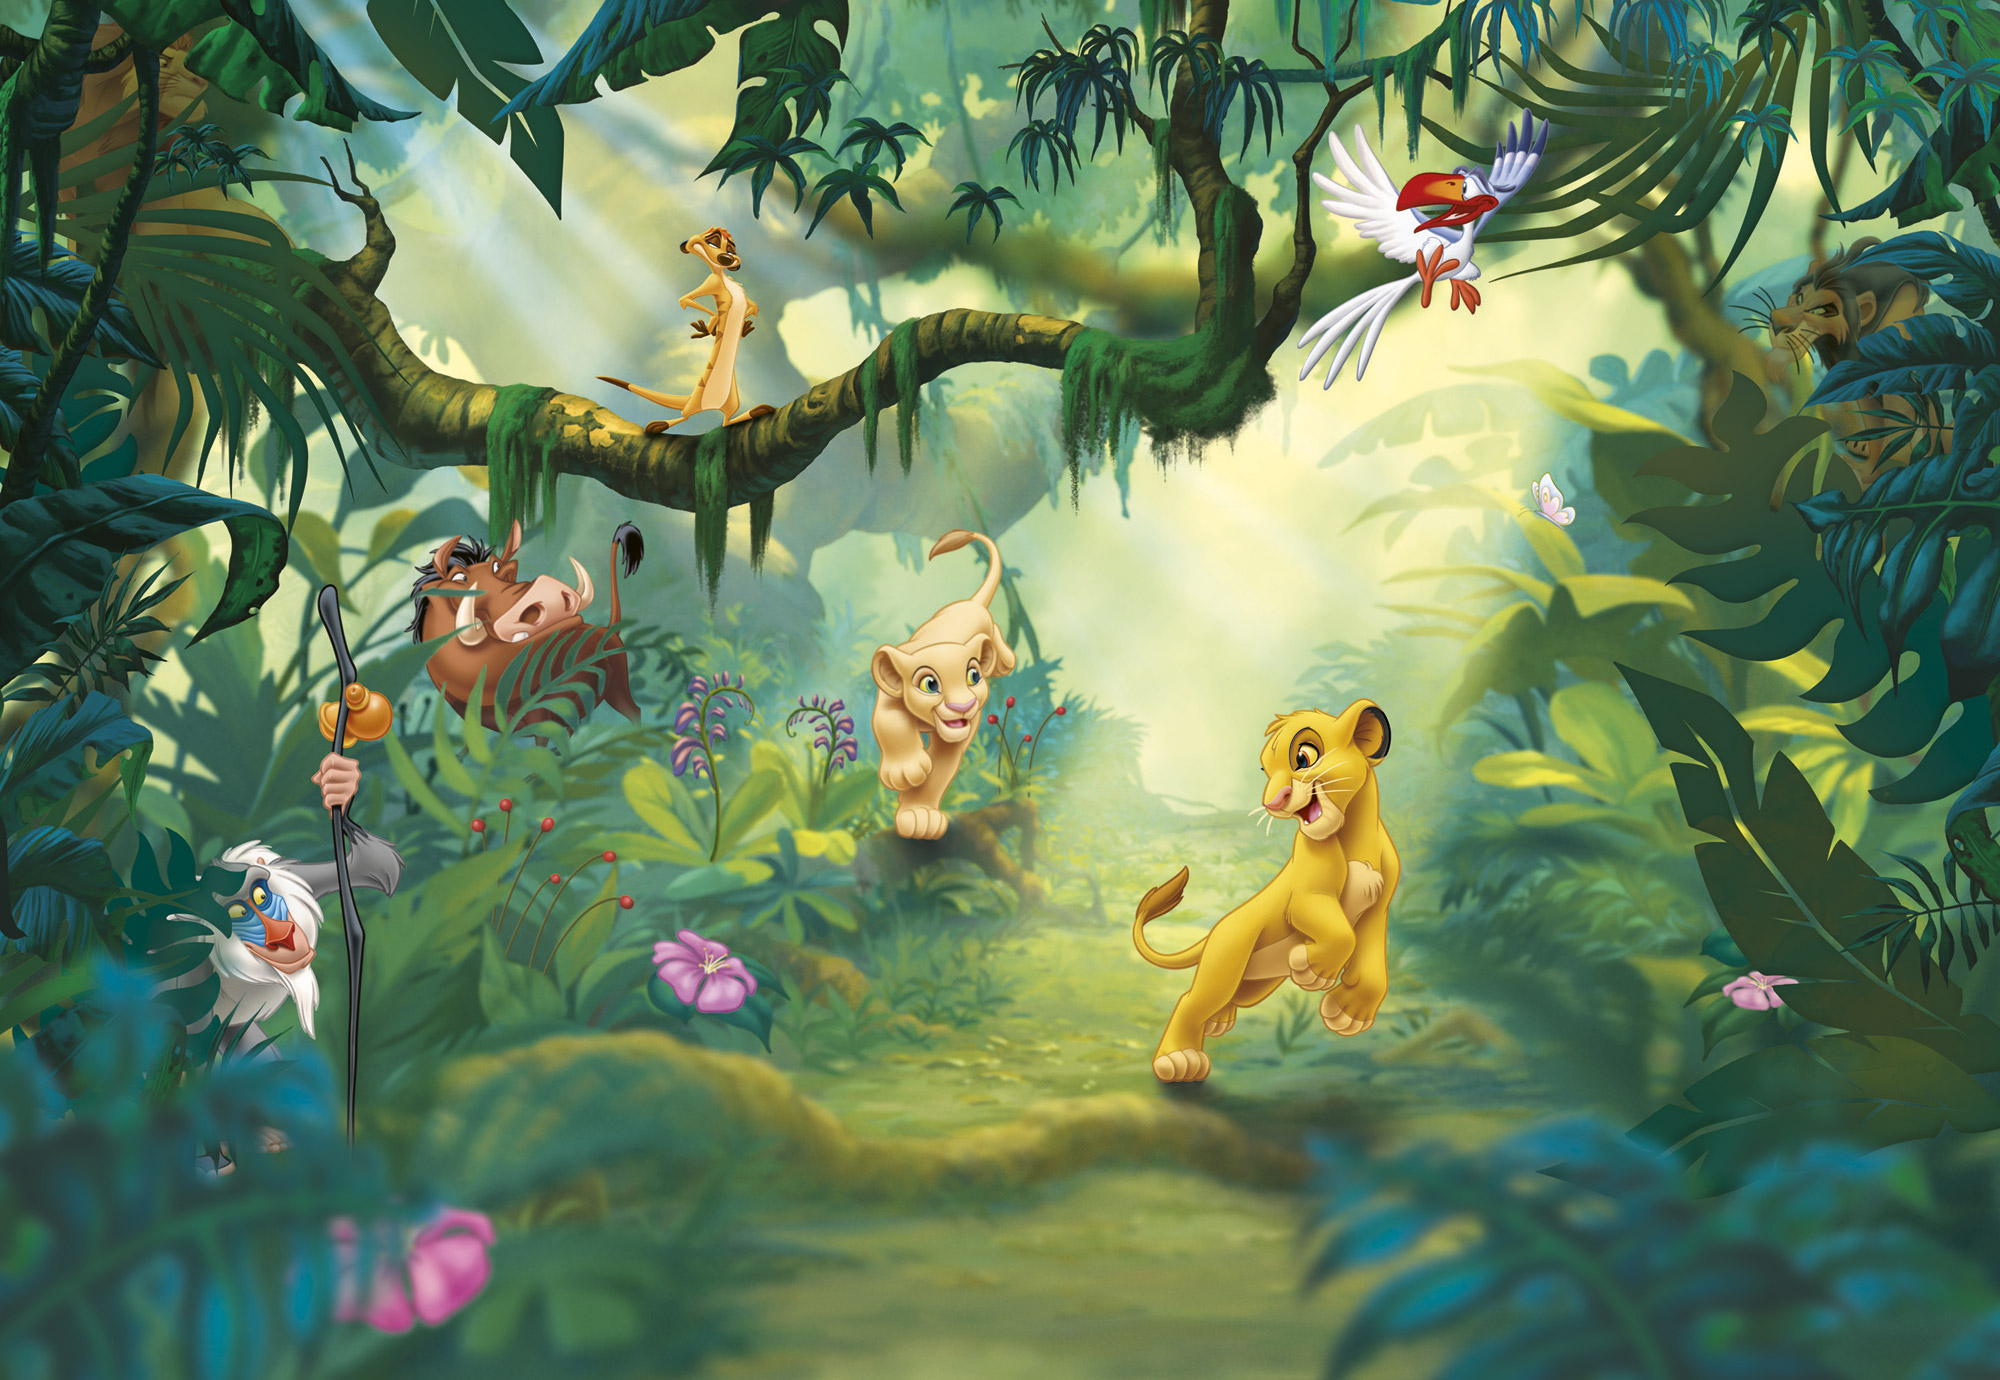 Lion King Wall Mural Photo Wallpaper for Kids Baby Room 368x254cm. Lion King Room Wallpaper   WallpaperSafari